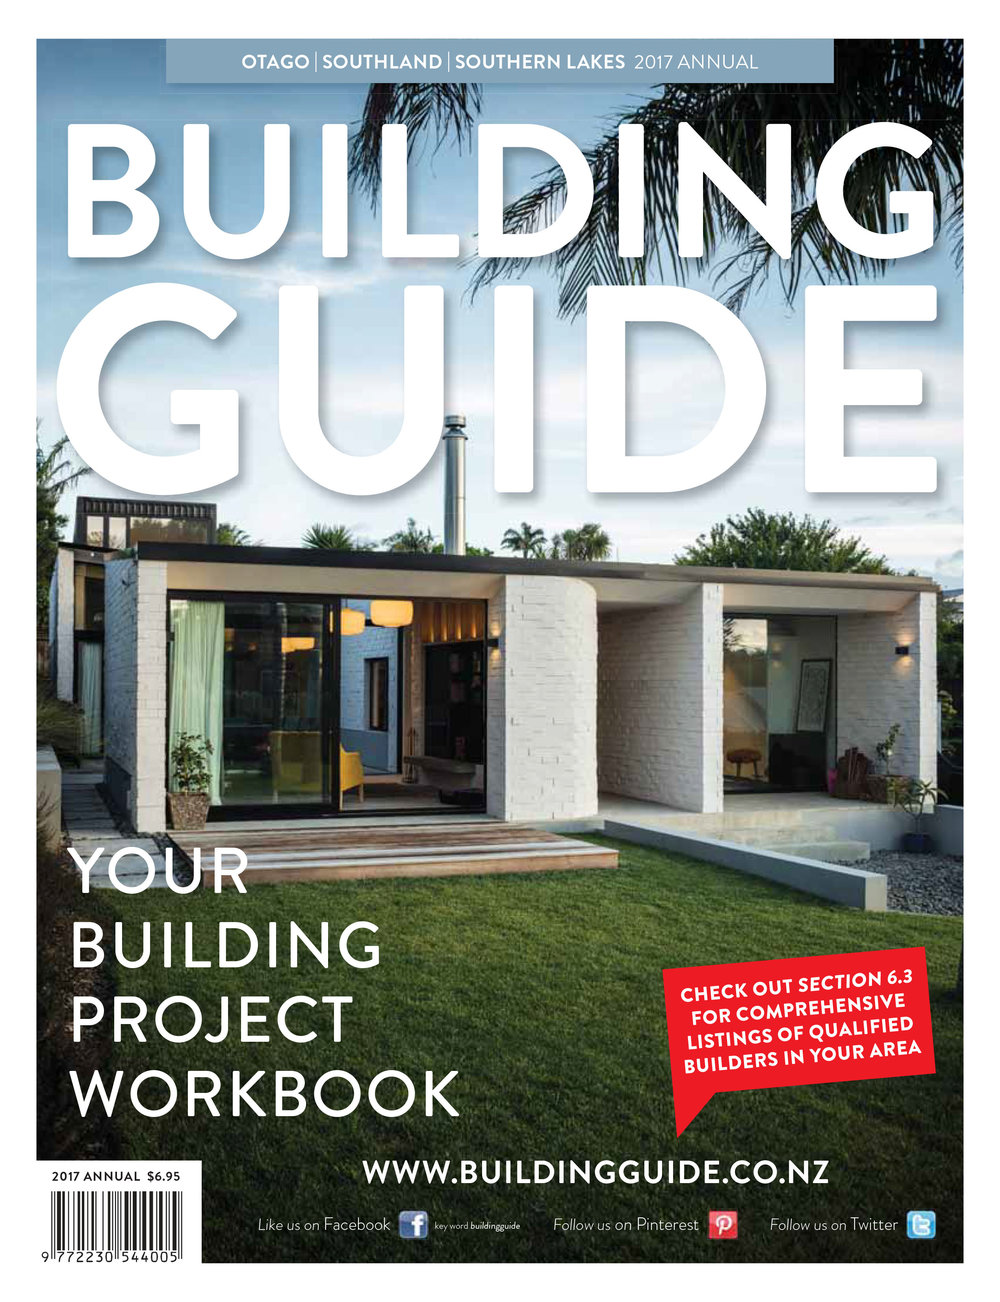 Otago-Southland-Building-Guide-2017-1.jpg